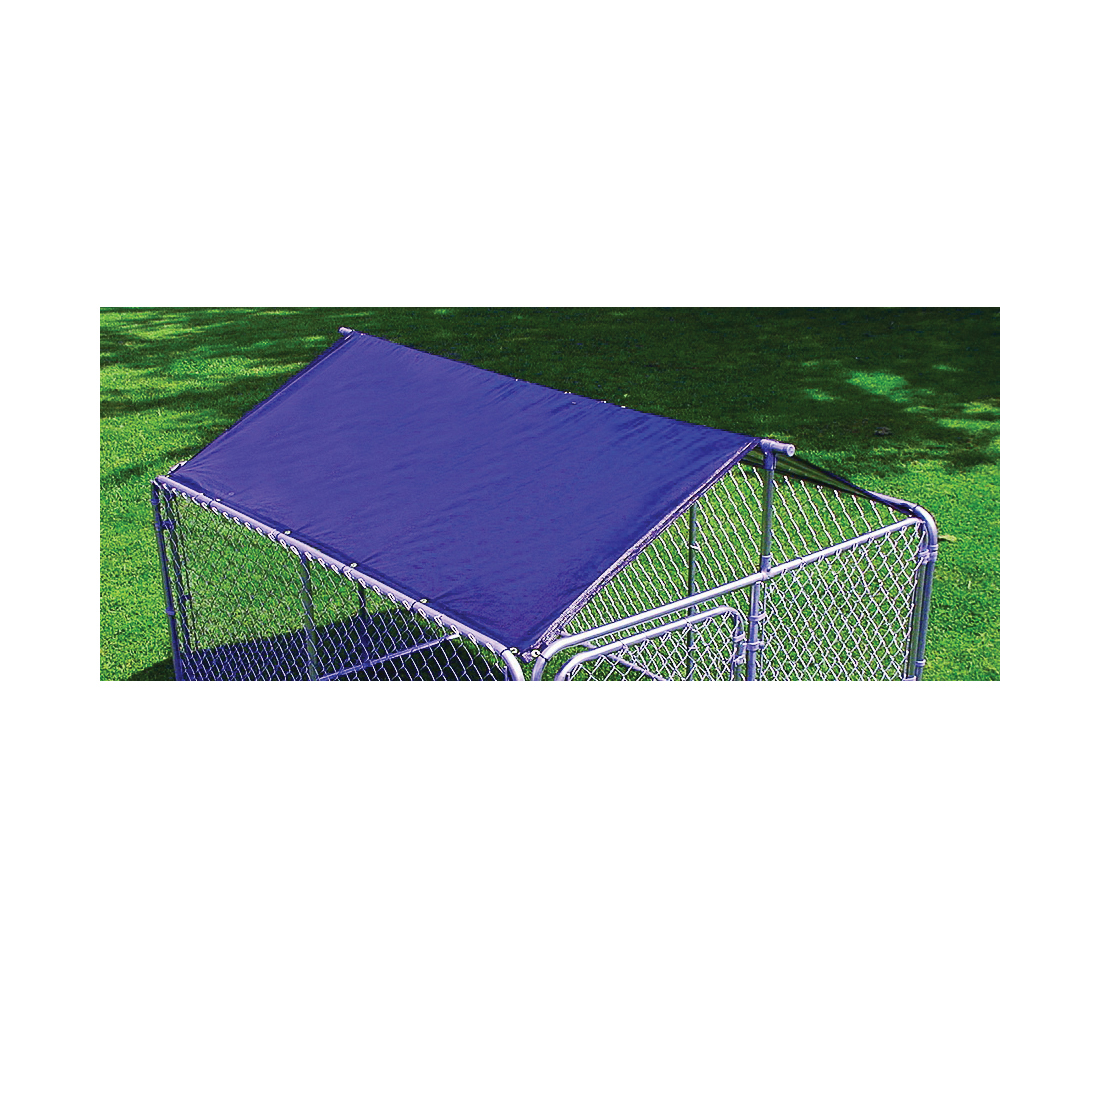 Picture of Stephens Pipe & Steel DKR10100 Kennel Roof and Frame, Solid, Steel